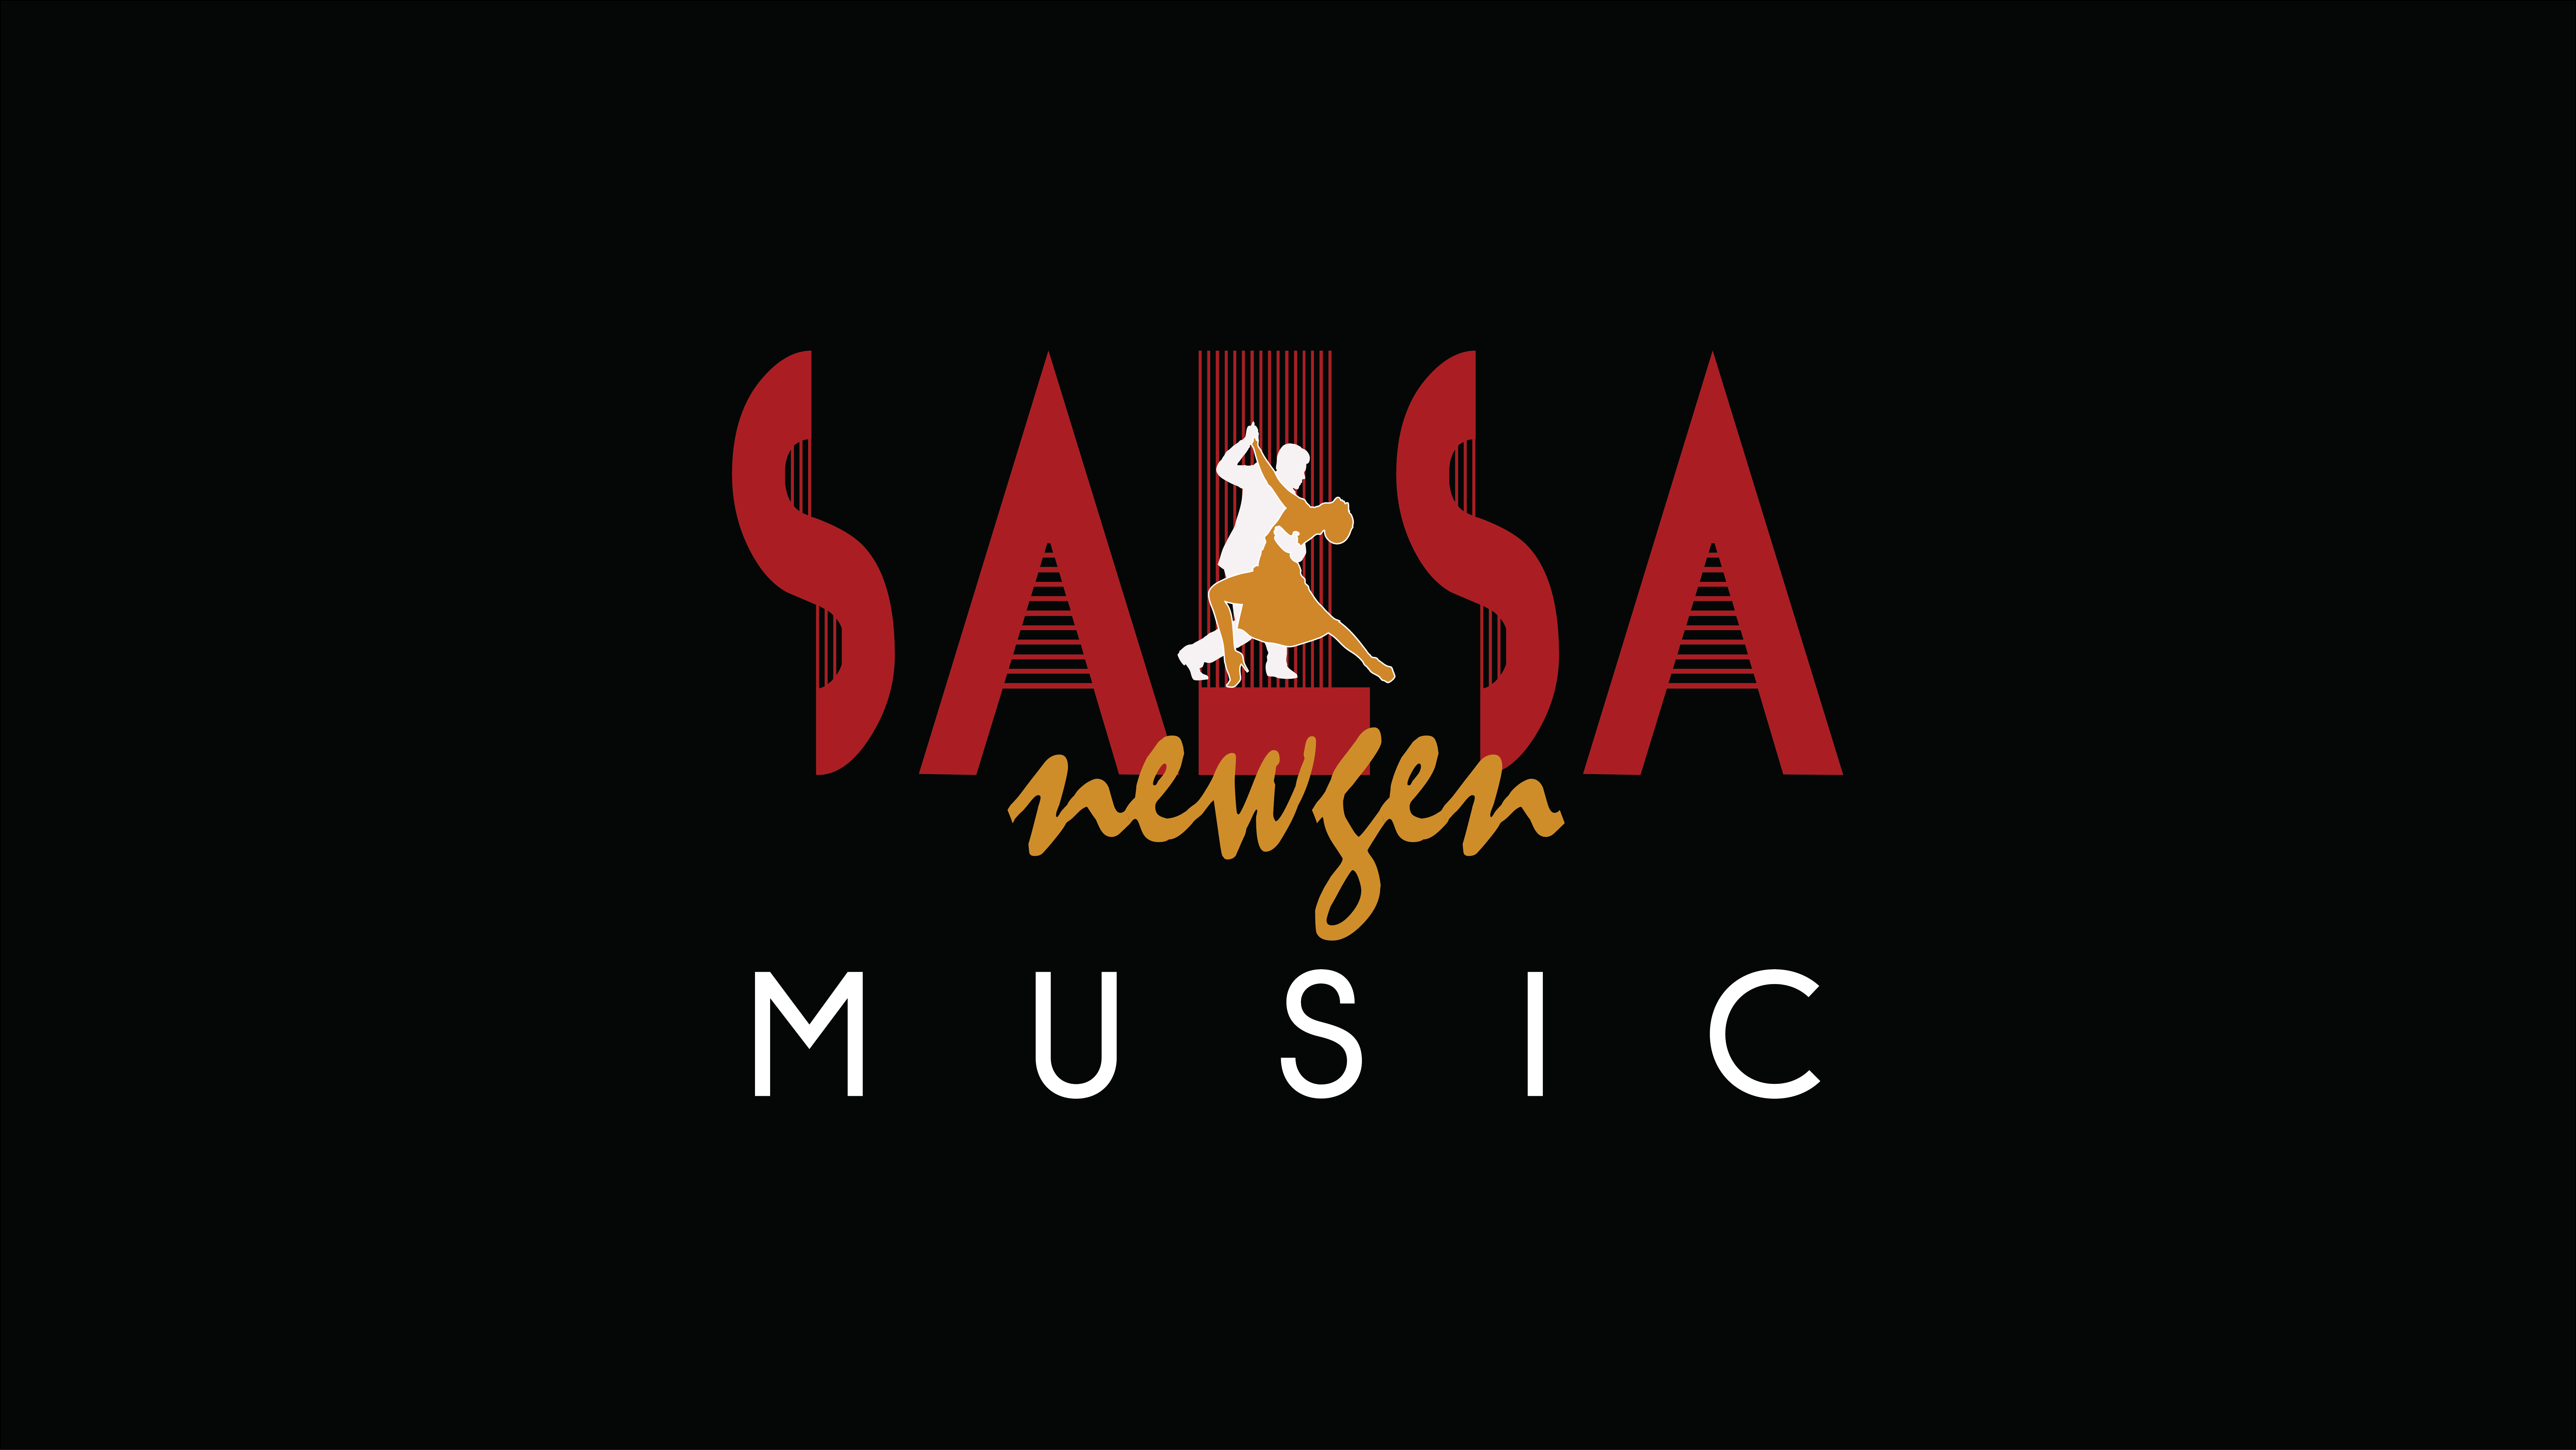 NEW GEN SALSA TOP 70 PLAYLIST AS OF 09/07/2014